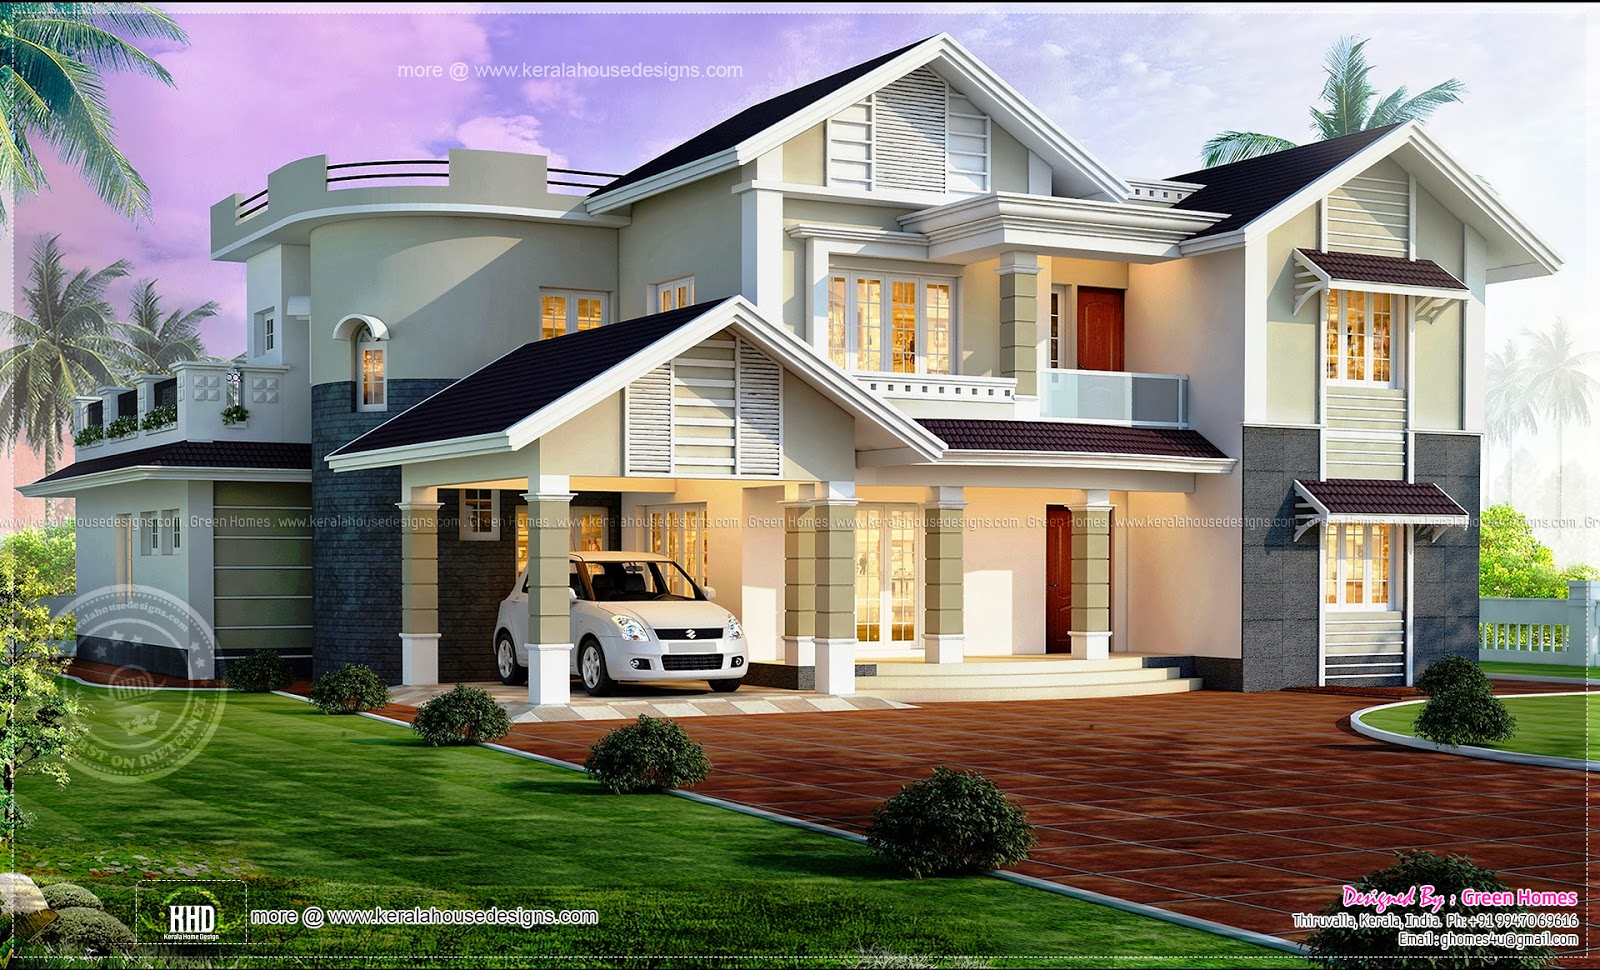 Beautiful kerala 1600 970 home design pinterest - Kerala exterior model homes ...